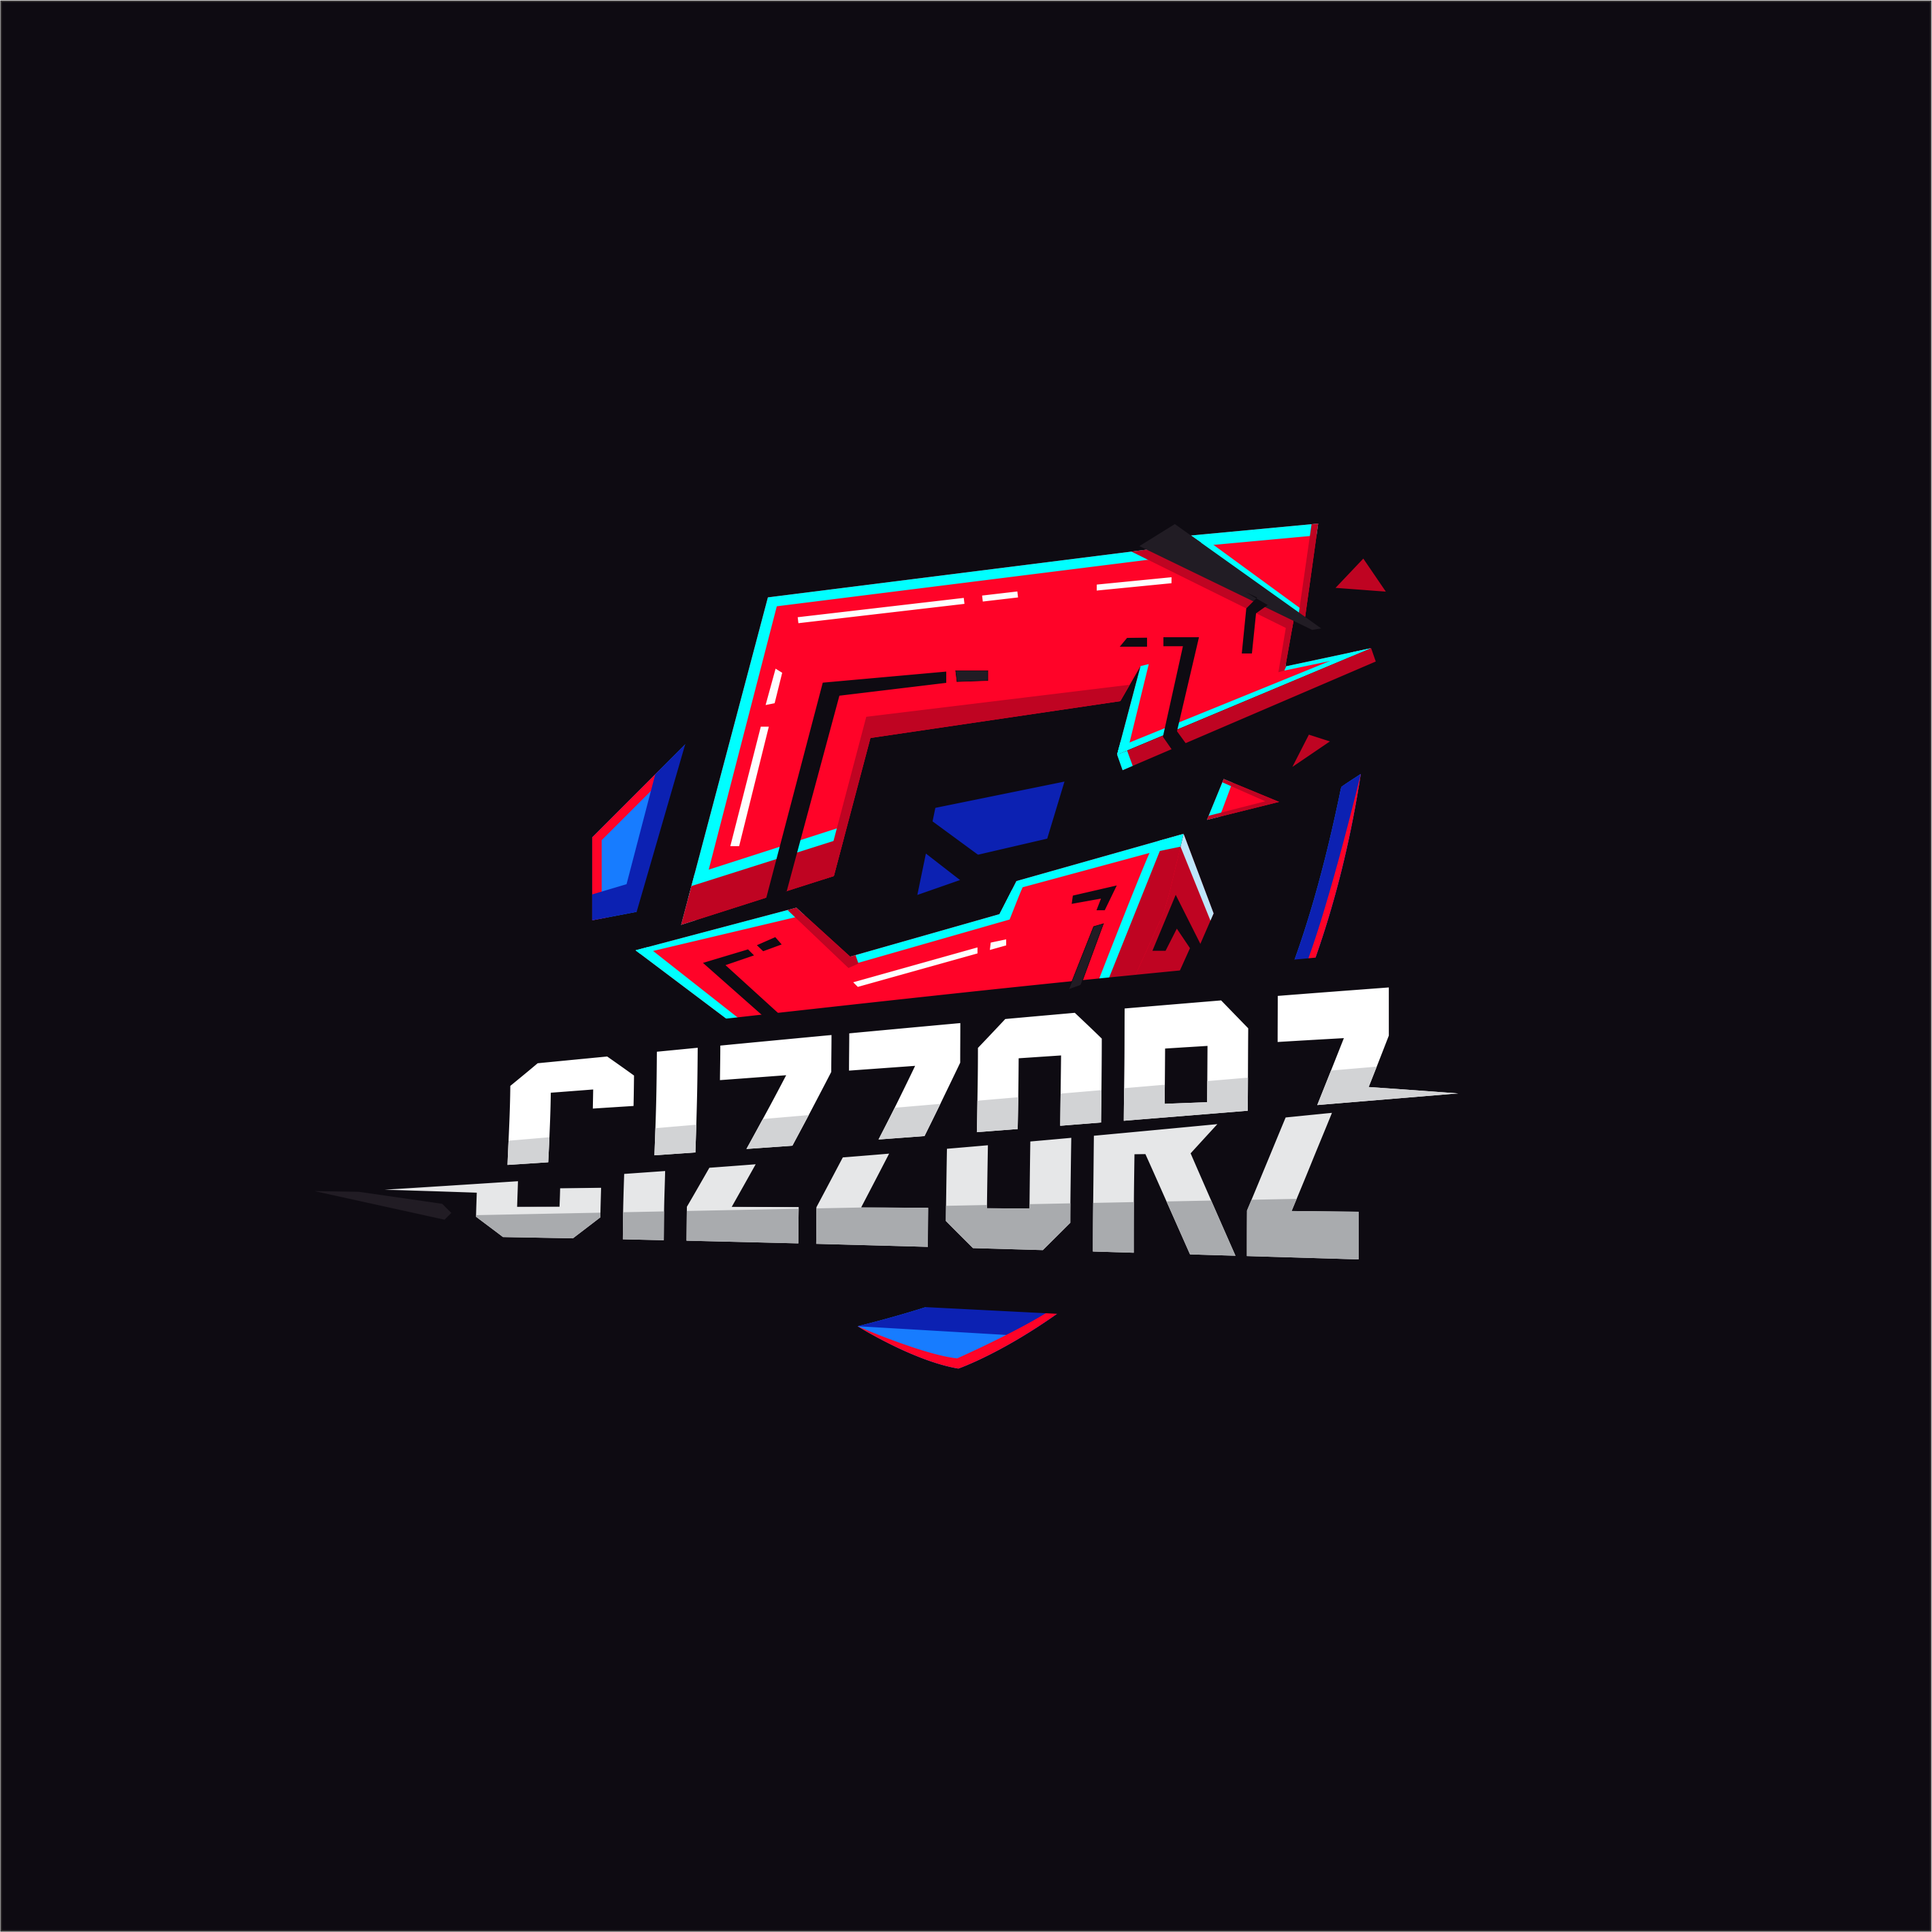 CIZZORZ (YouTuber) needs 'cool' new Logo!